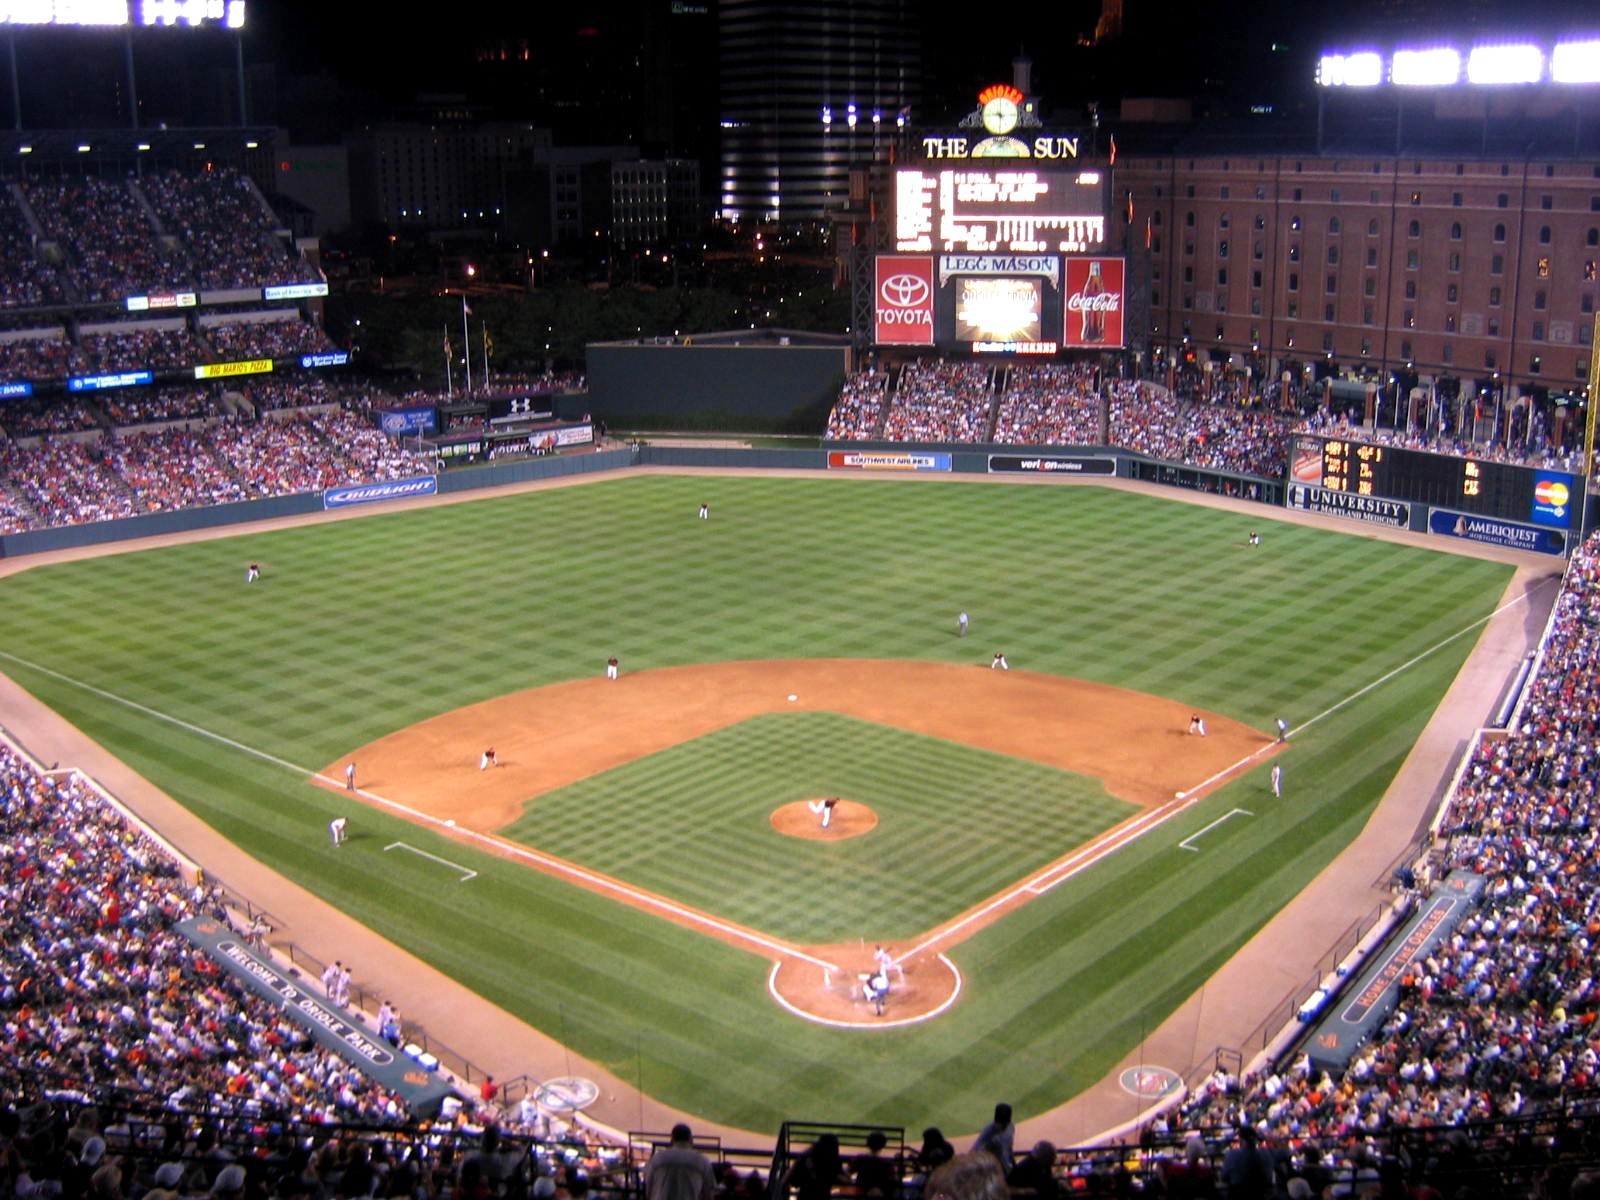 #2 – Oriole Park at Camden Yards – 13 games attended